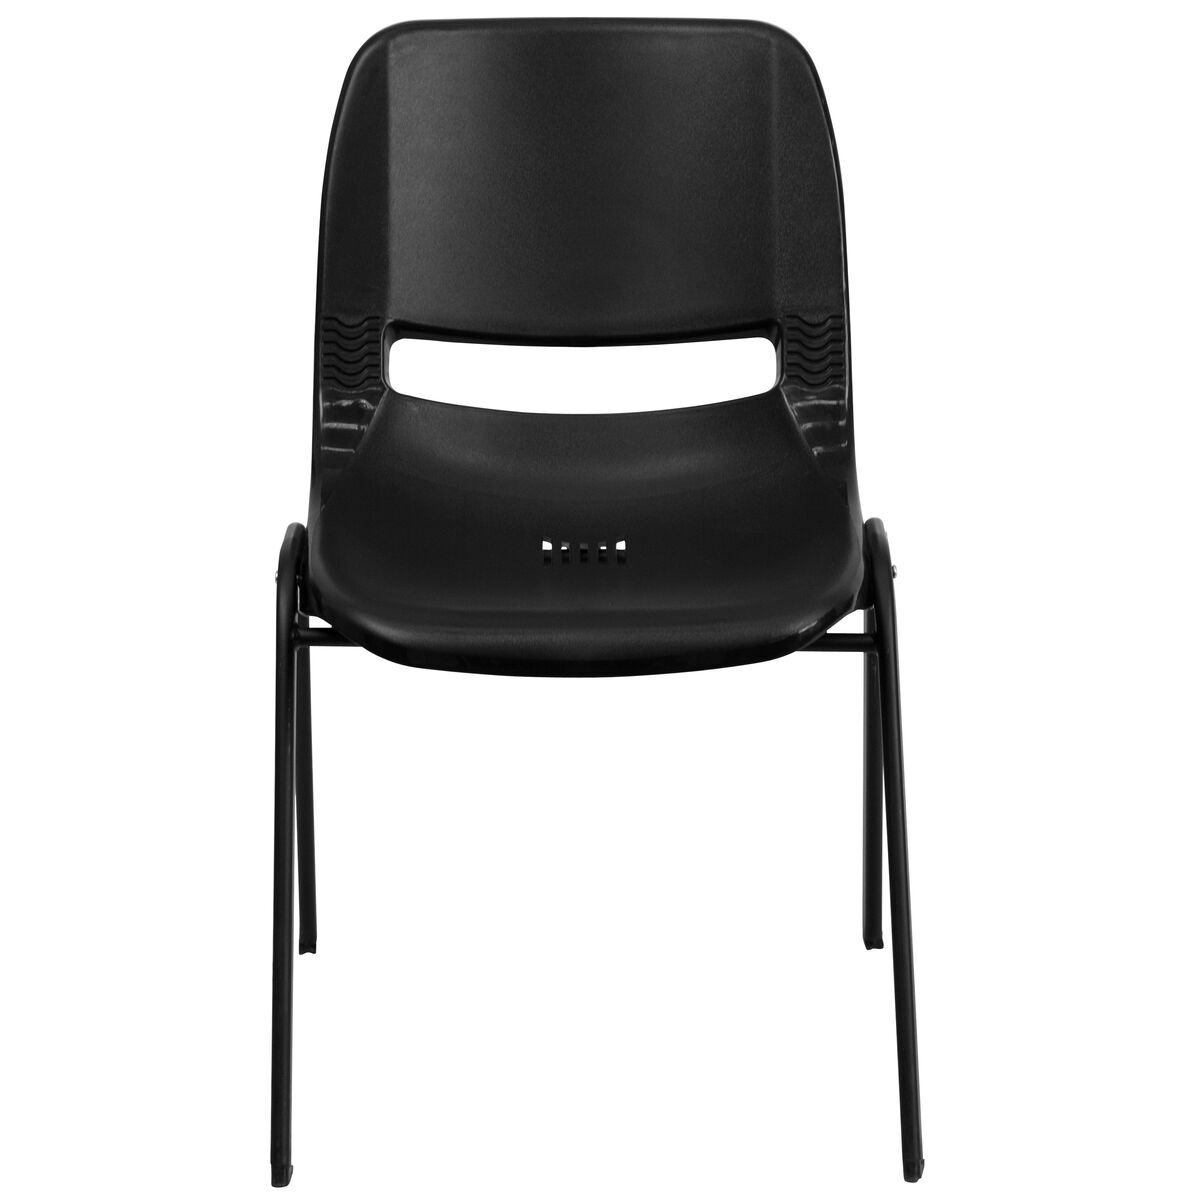 Our Hercules Series 880 Lb Capacity Black Ergonomic Shell Stack Chair Is On Now